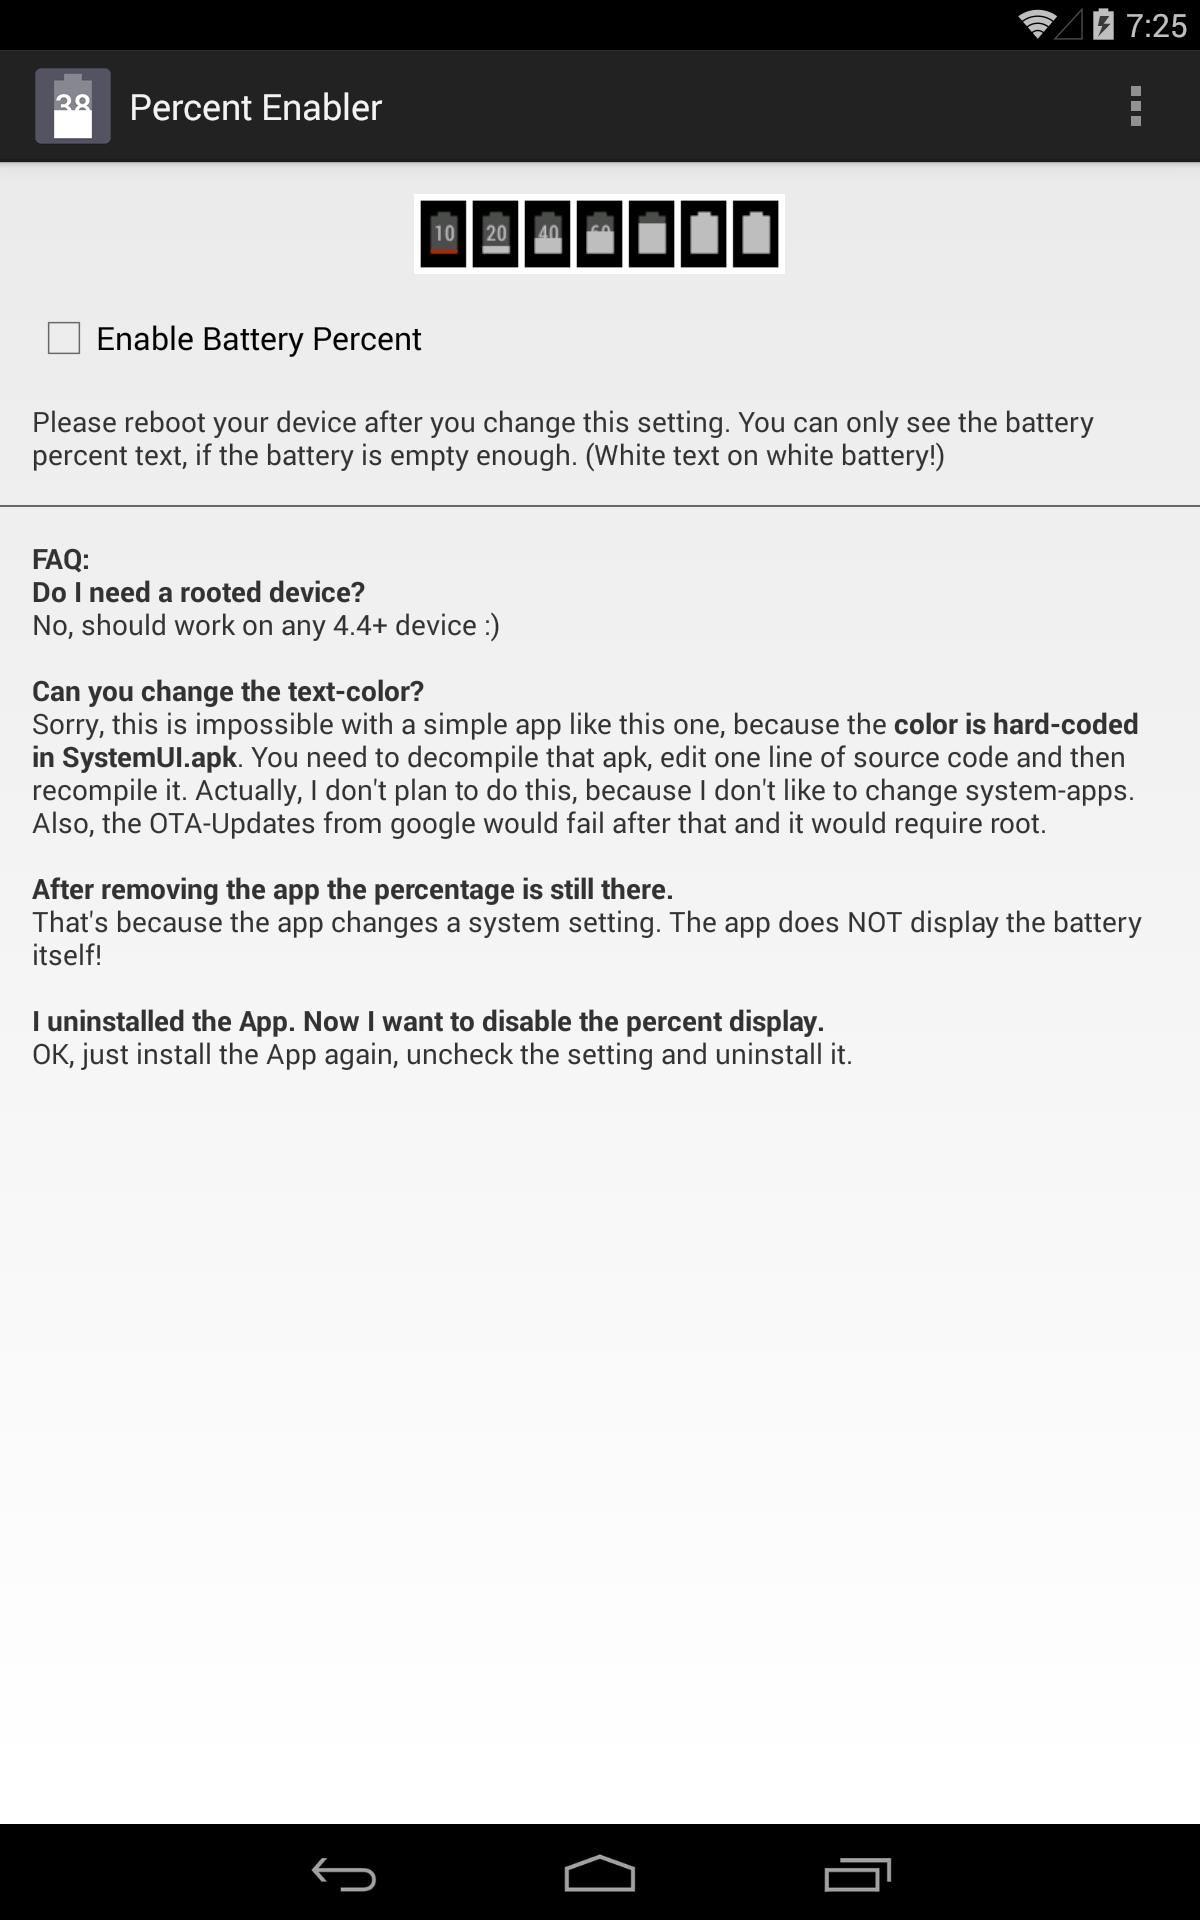 Battery Percent Enabler for Android - APK Download